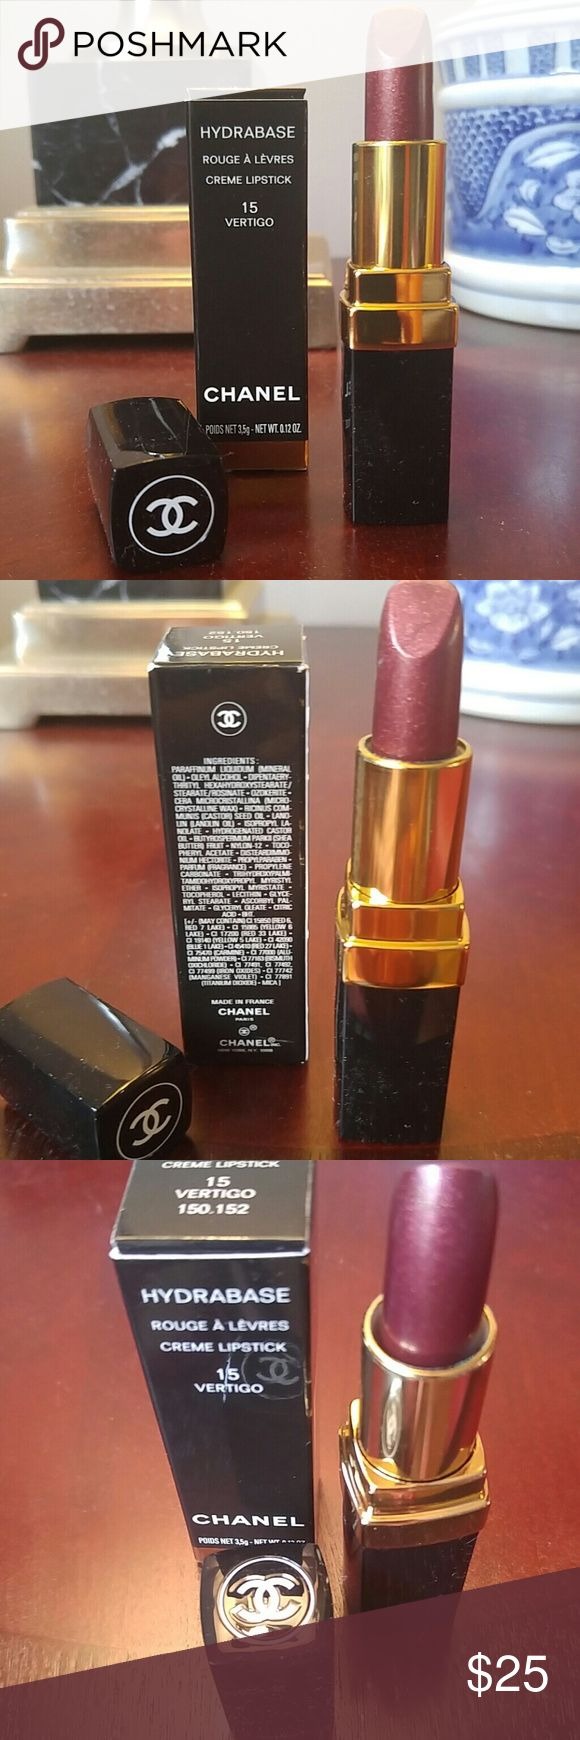 CHANEL CREME LIPSTICK Fabulous CHANEL lipstick. Beand new, never been opened. VERTIGO colour. A bronzy- pink, great for a slick of colour on your lips. Long-lasting and great for all complexions. CHANEL Makeup Lipstick